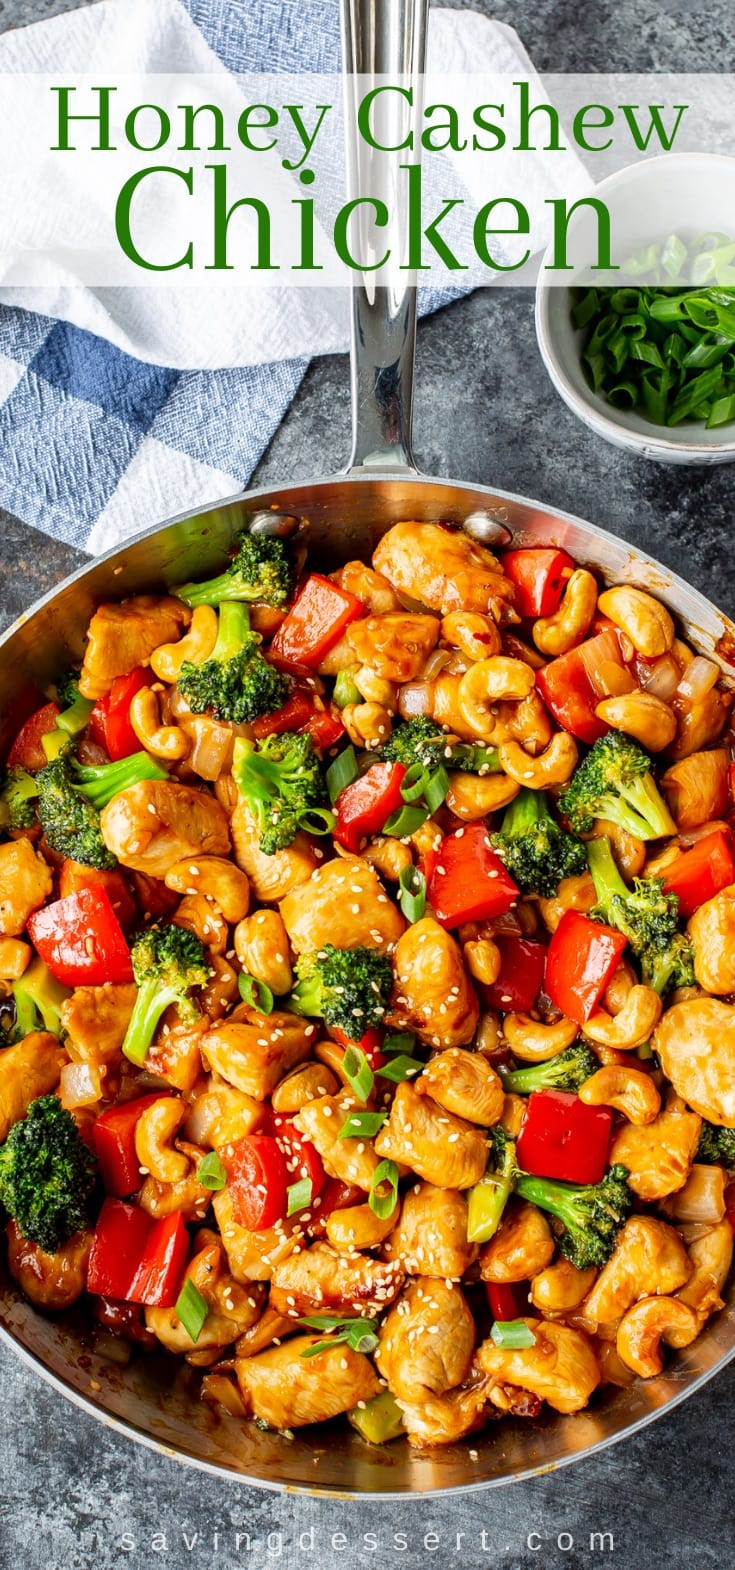 A skillet filled with honey cashew chicken with broccoli, red peppers and sesame seeds